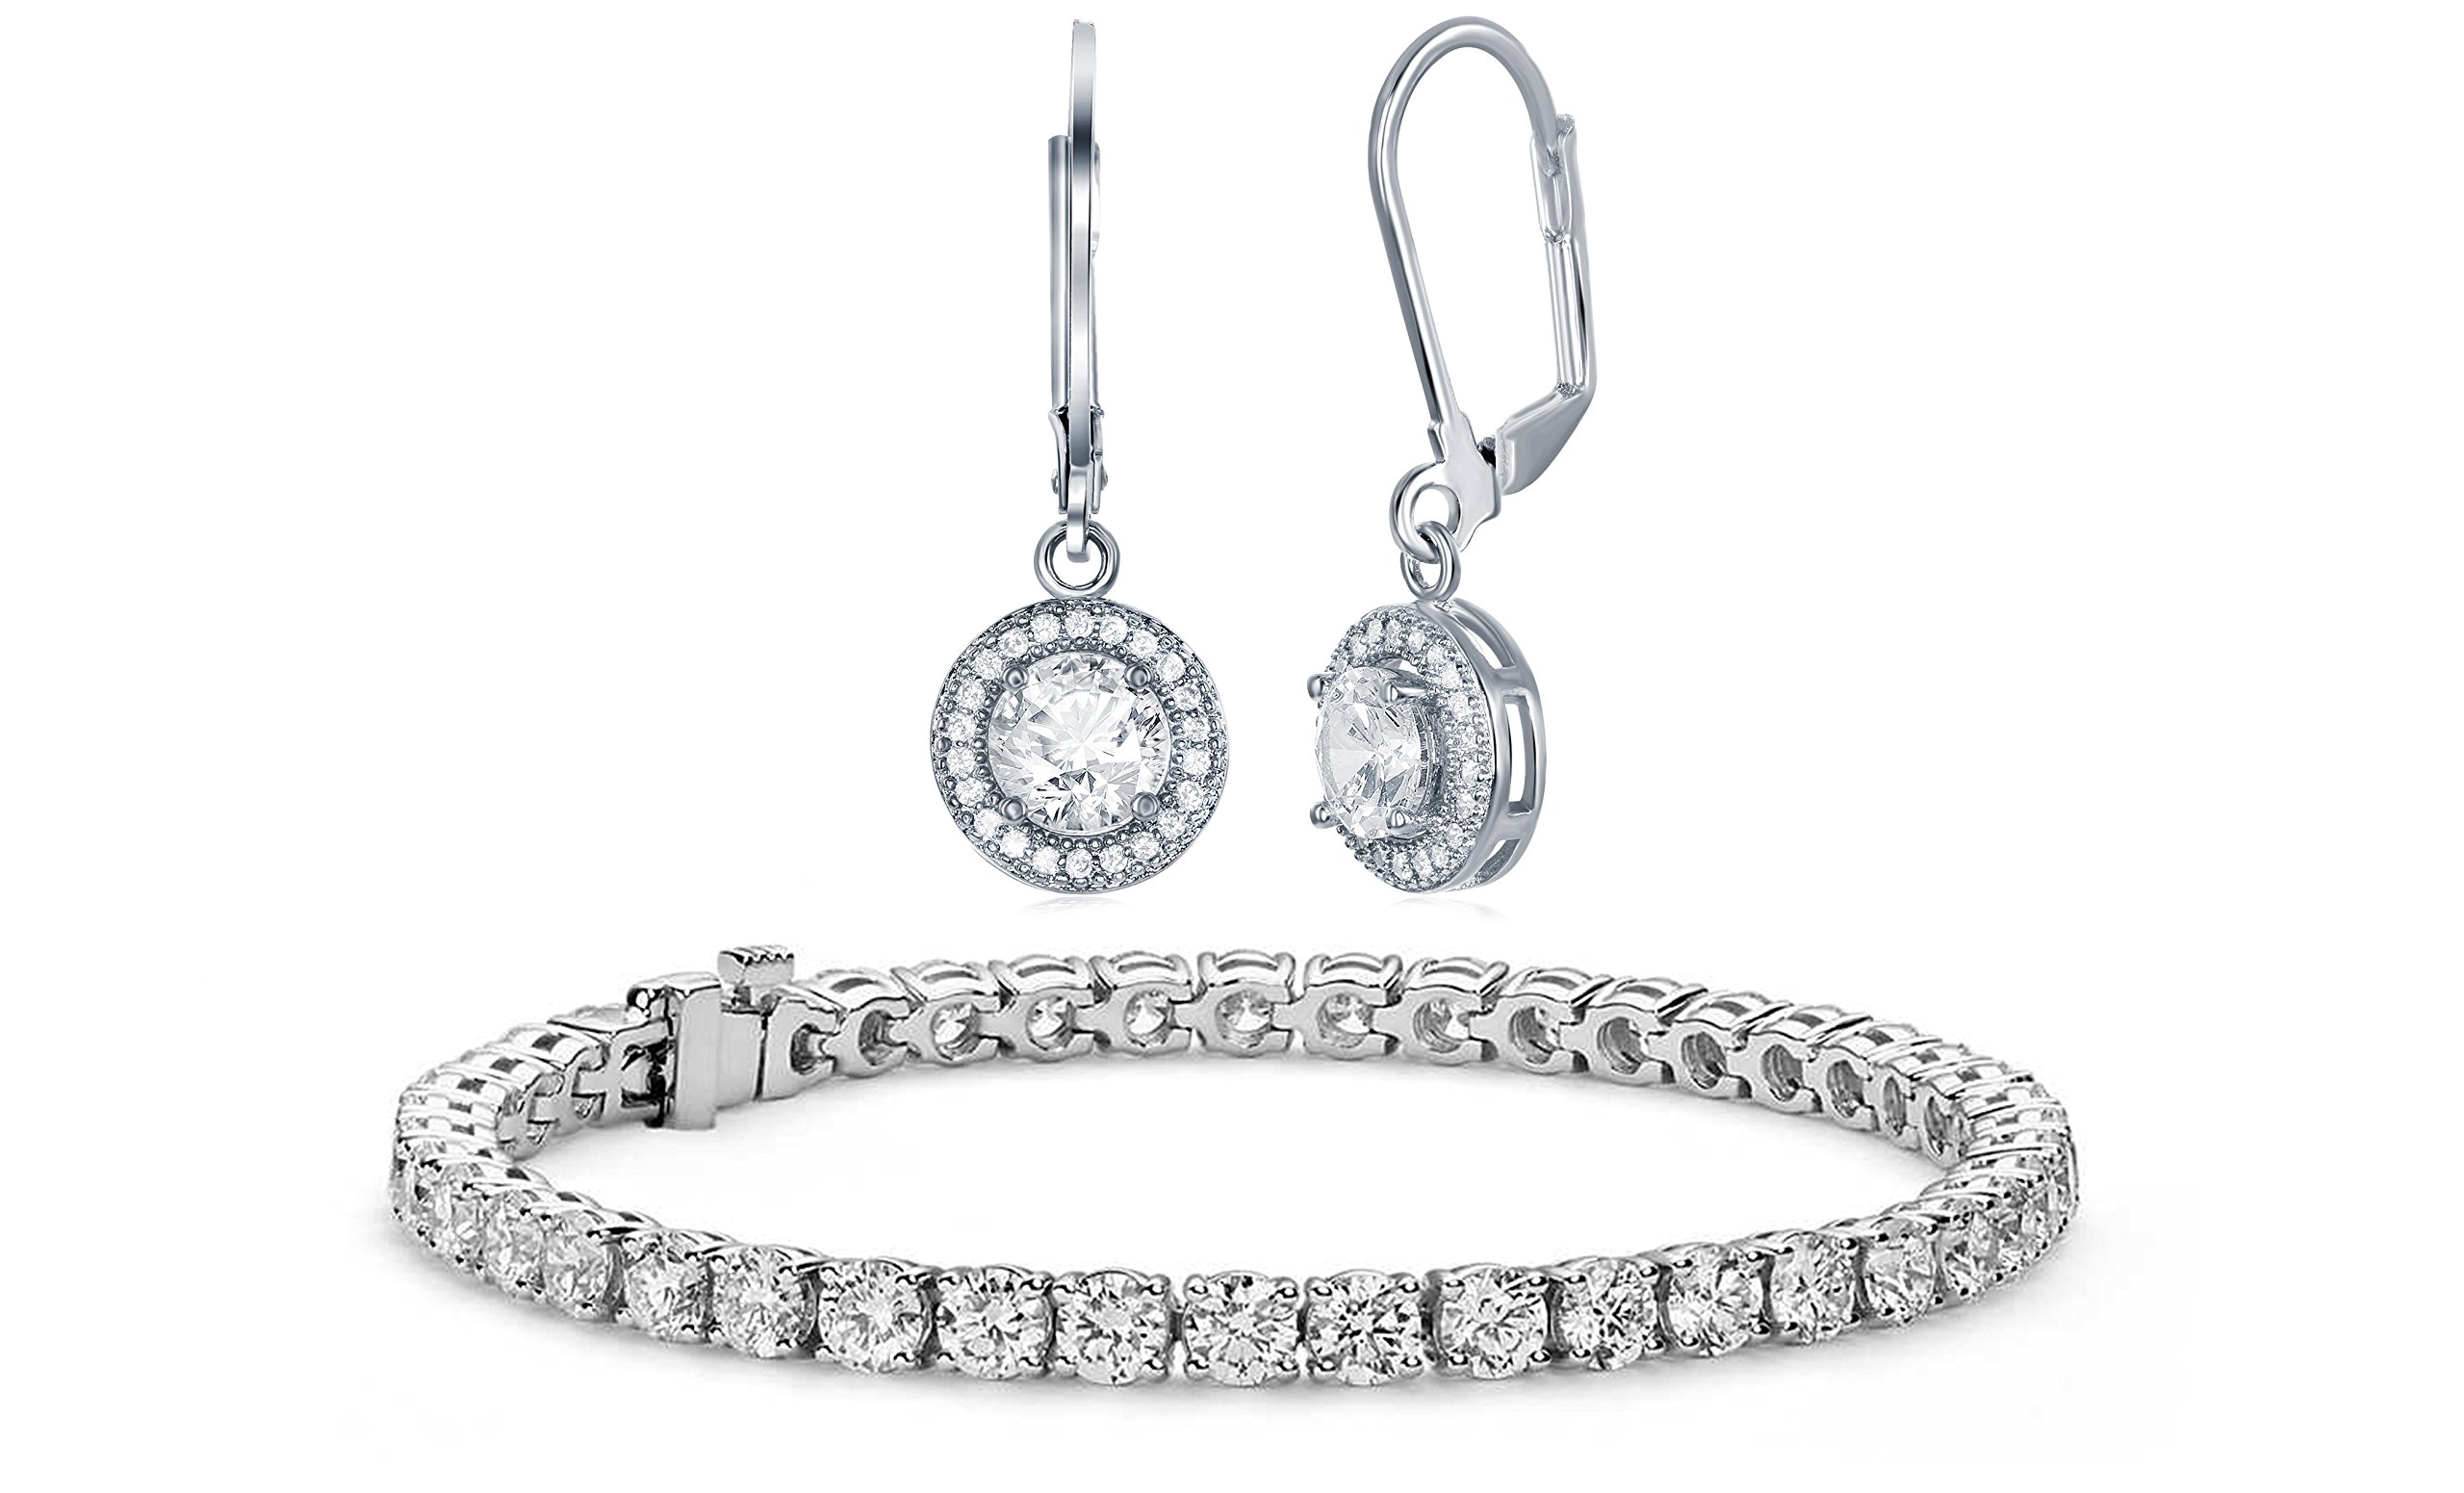 NYC Sterling Halo Drop Earrings and Tennis Bracelet Bridal Gift Set (Round Cut)